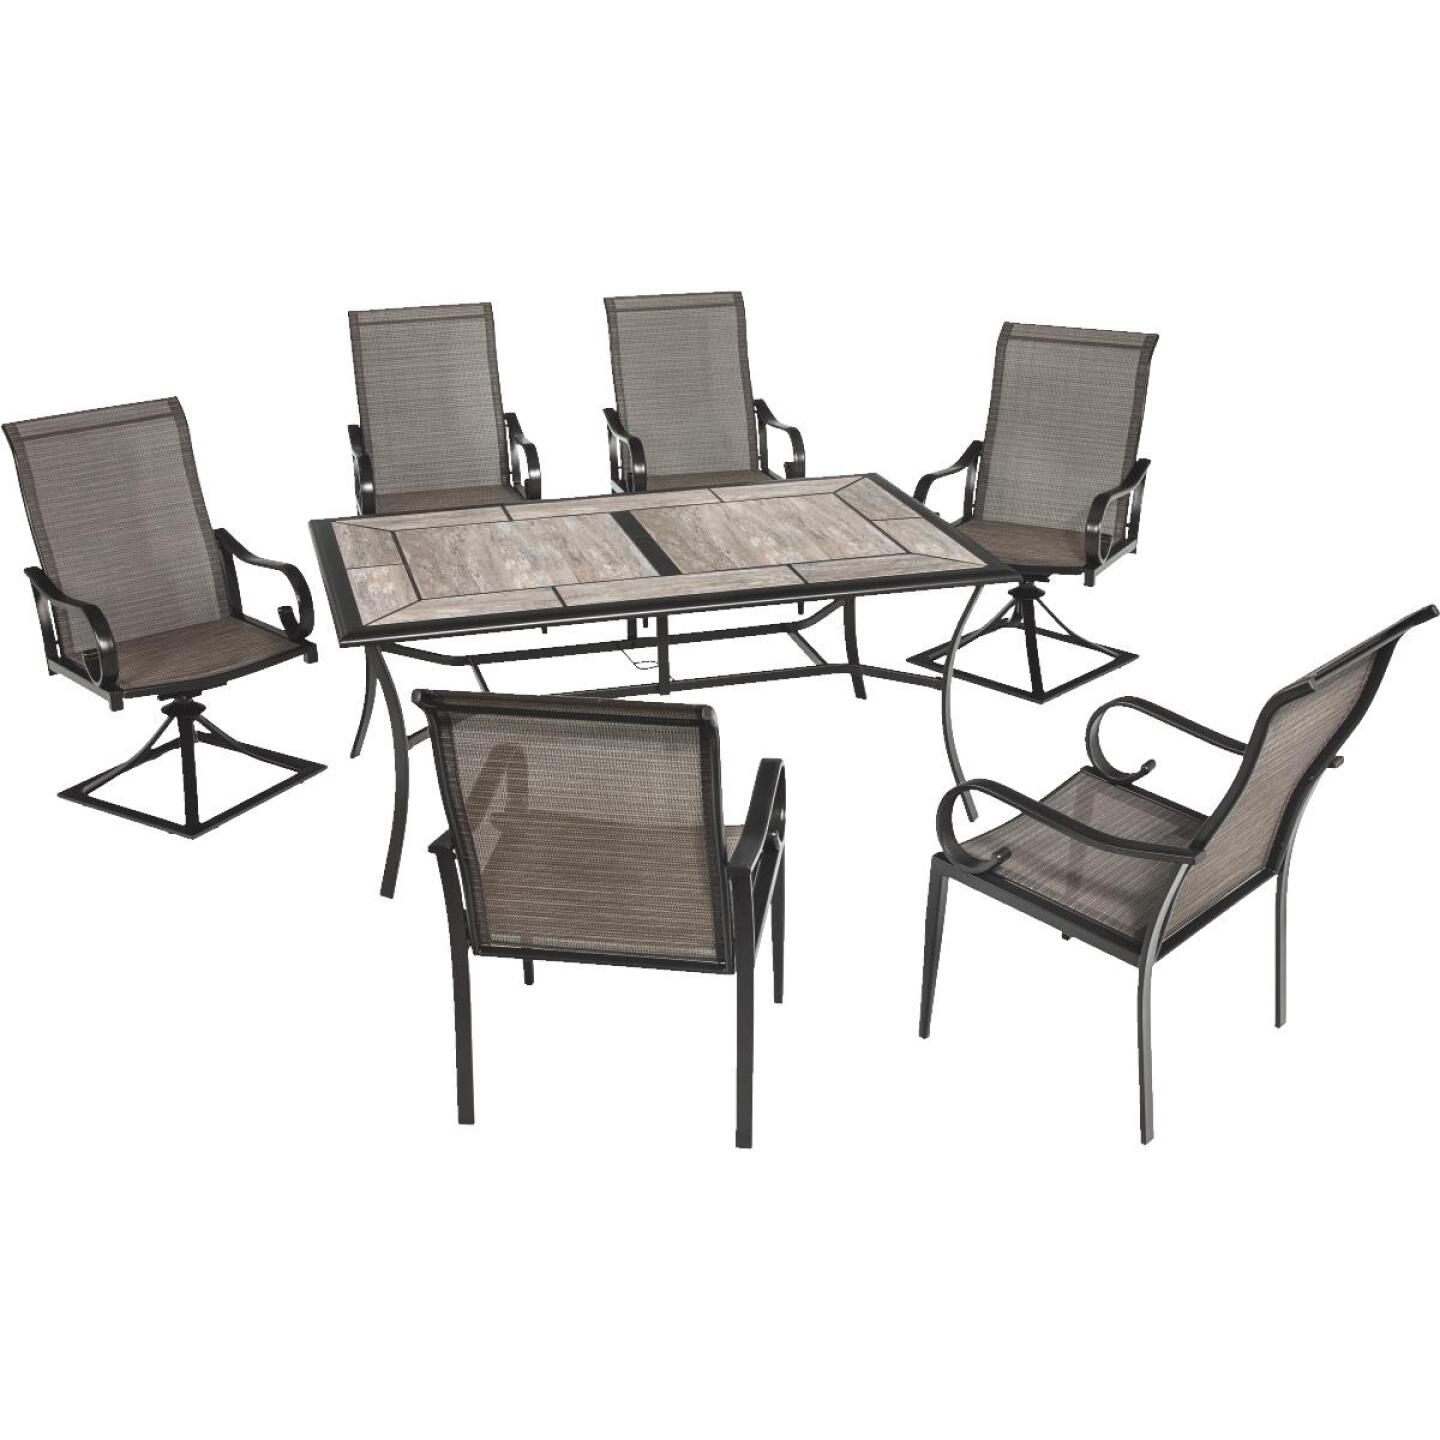 Outdoor Expressions Berkshire 7-Piece Dining Set Image 240